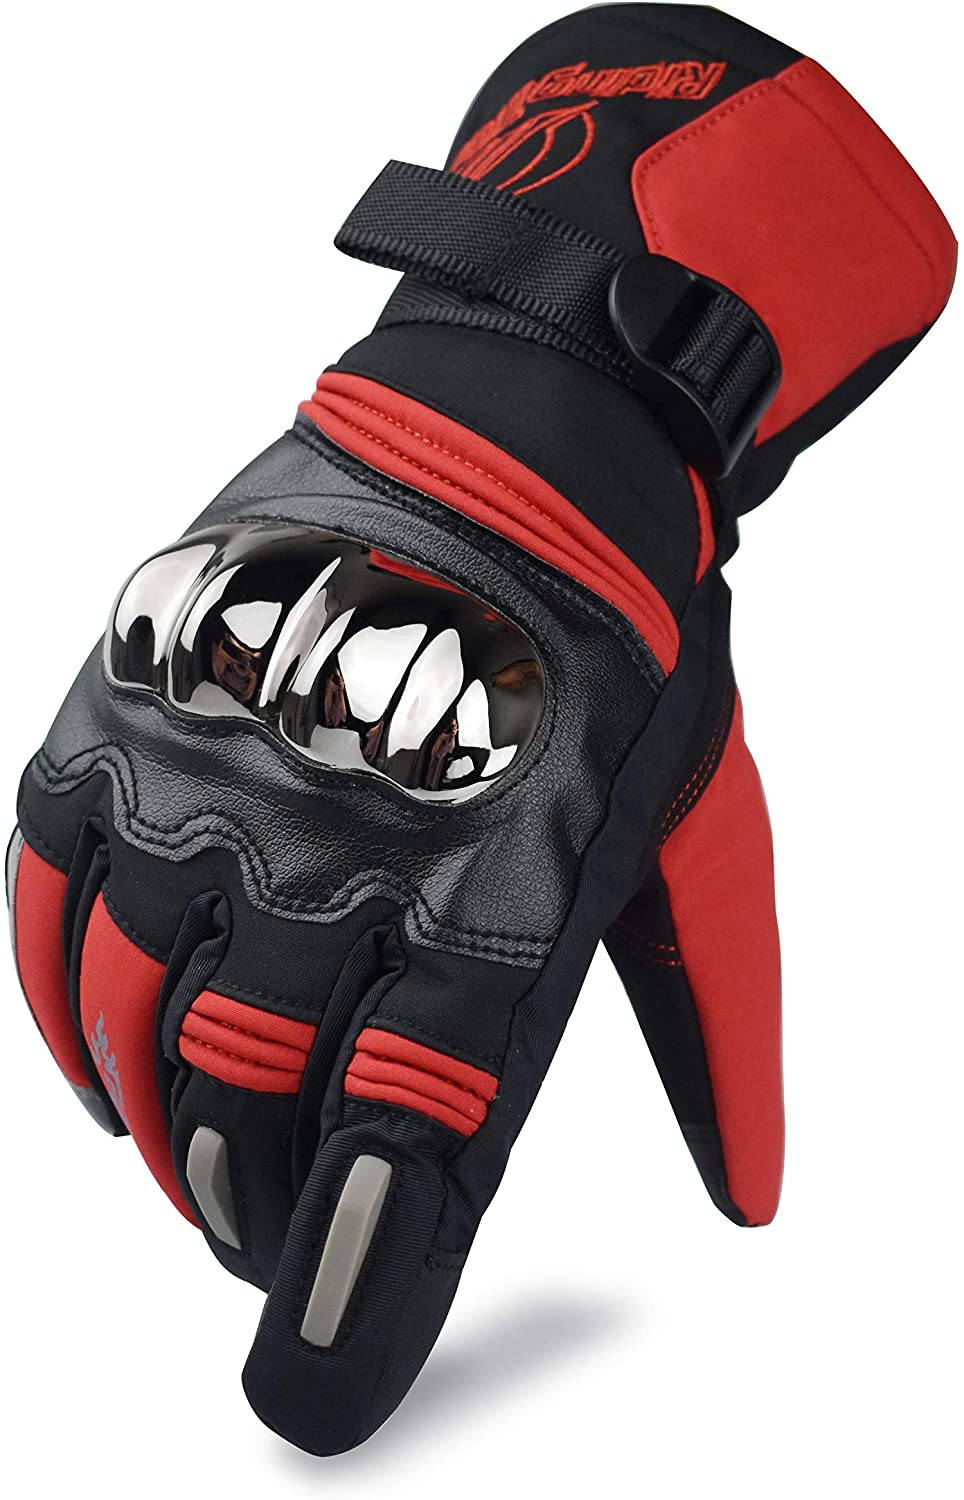 CHCYCLE Touchscreen Motorcycle Gloves Winter Waterproof Full Finger Riding Gloves for Men (Red, X-Large)